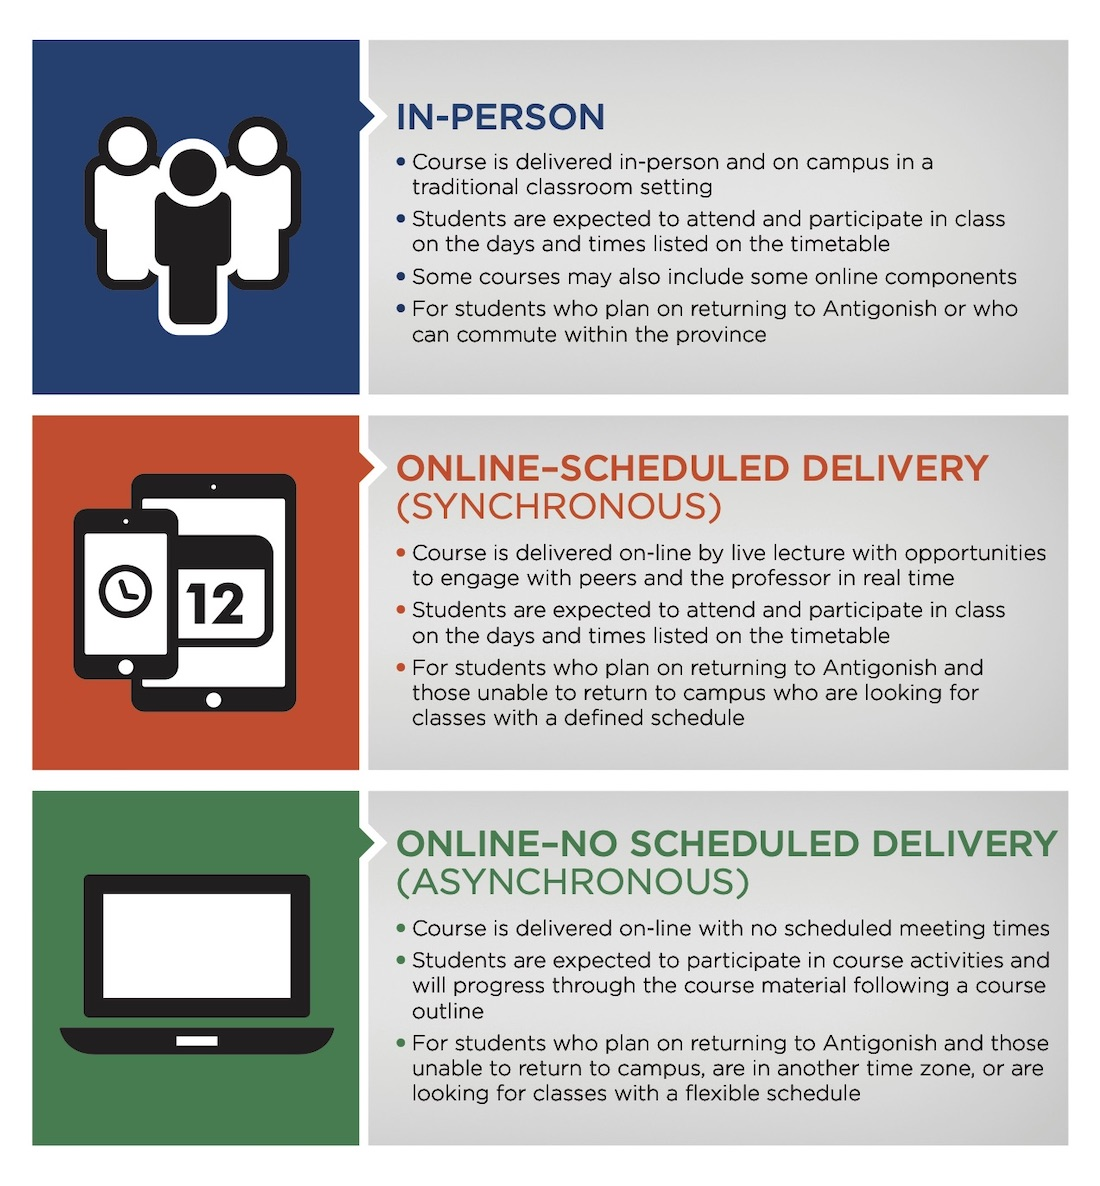 Graphic for class delivery